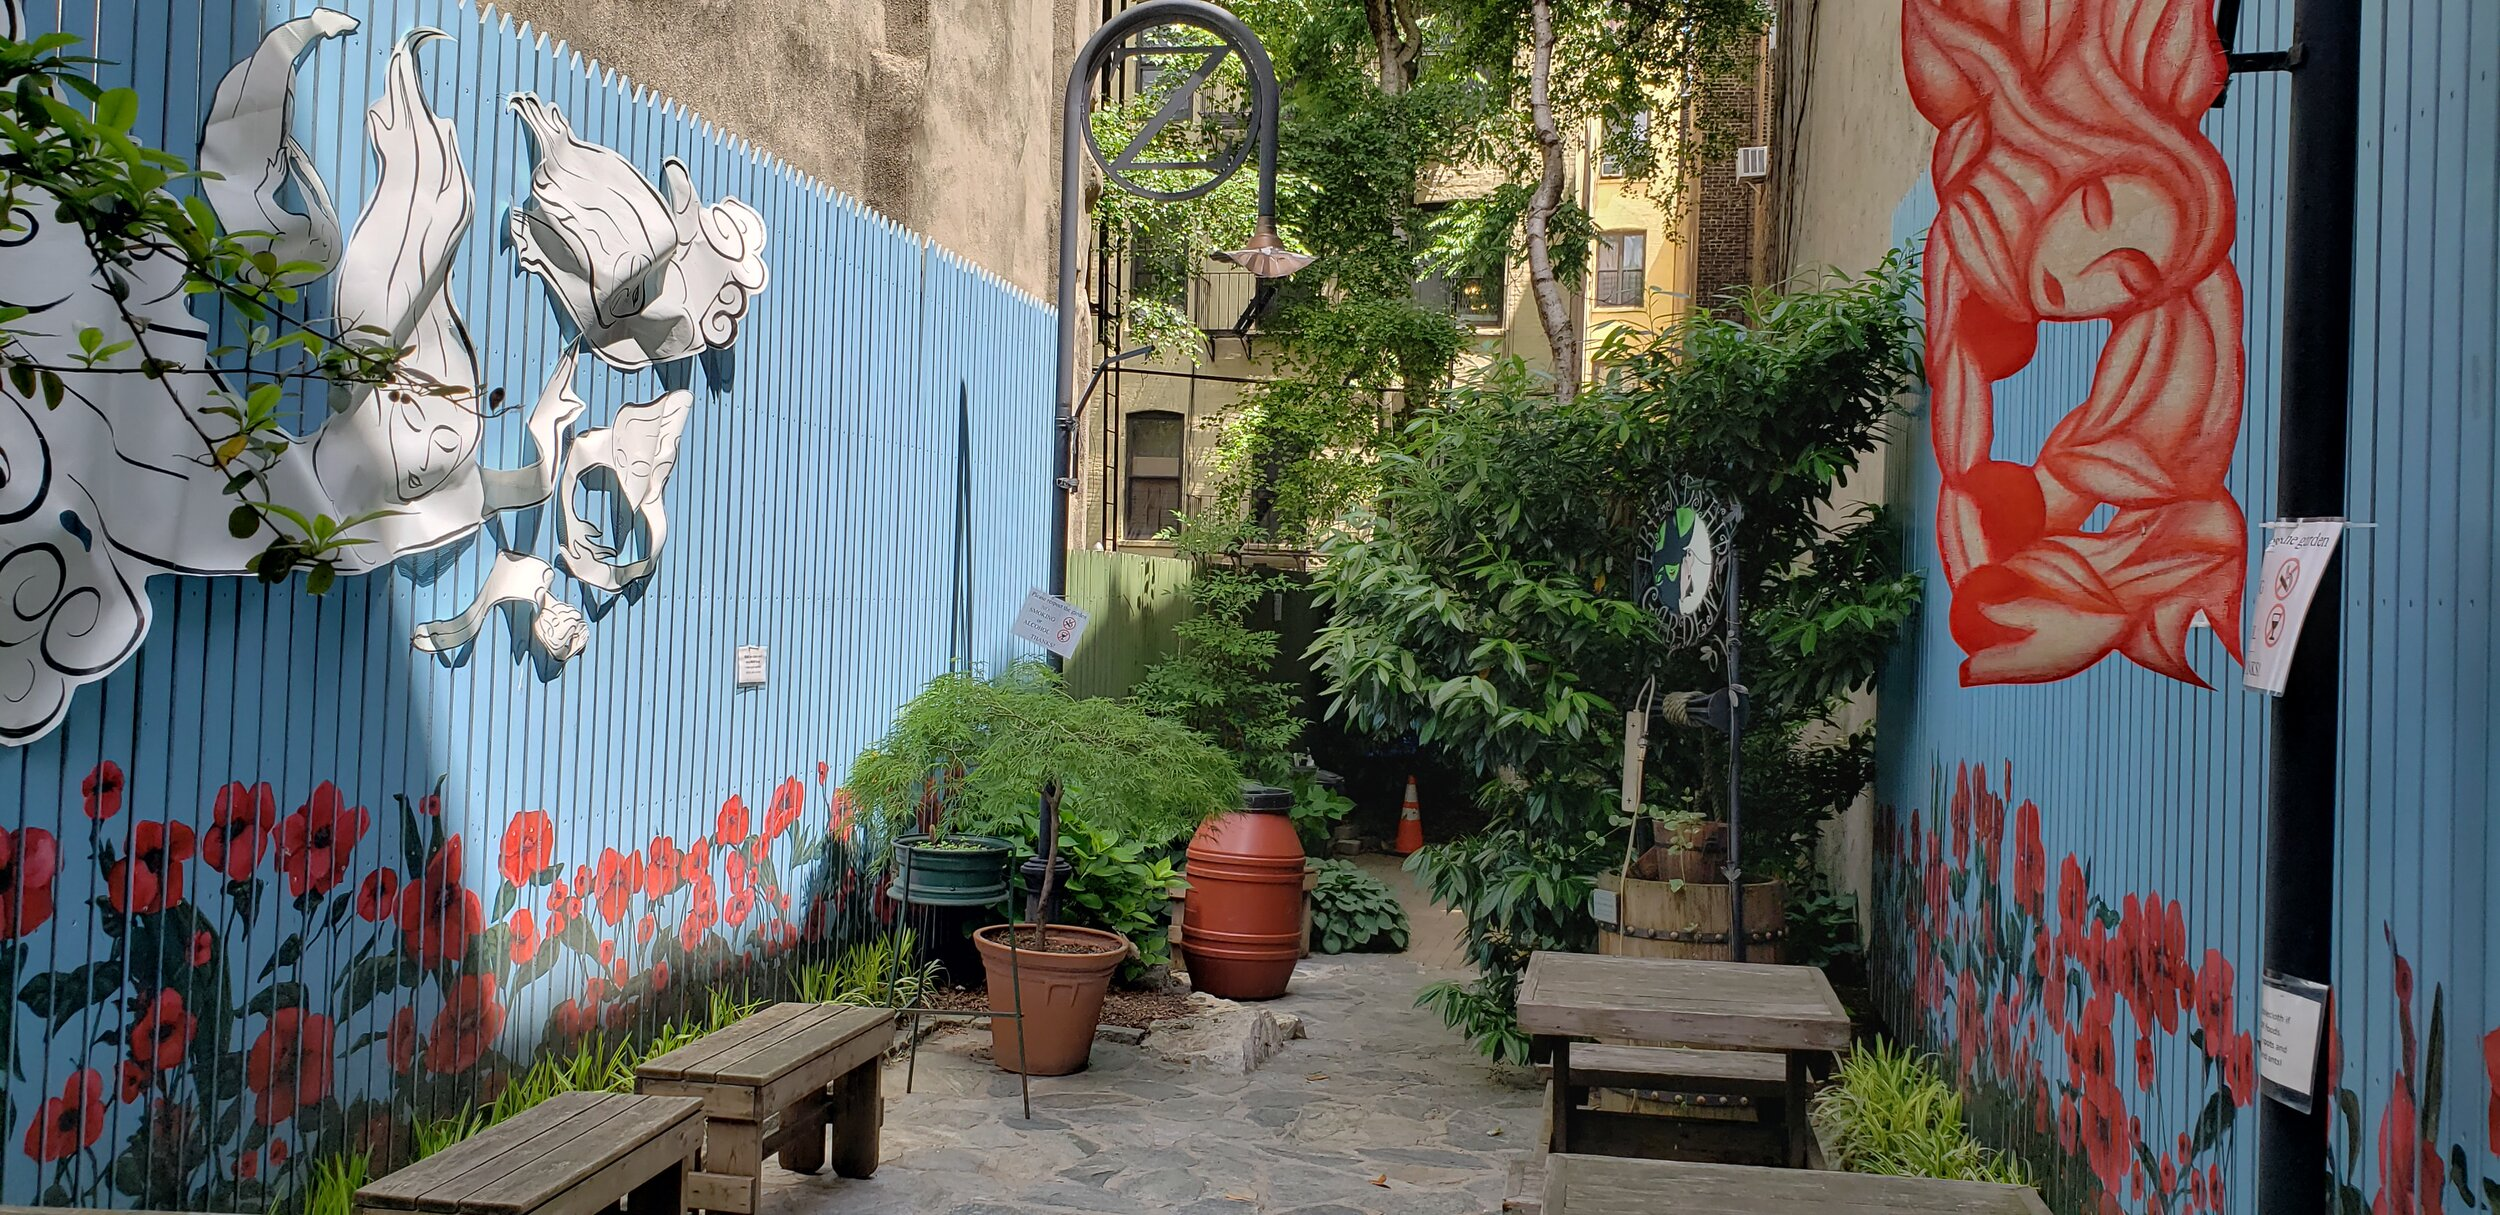 Community garden tucked between tall New York City buildings. In the foreground can be seen pavers marking a path, benches, compost bin, rain bucket, and array of trees and bushes. The side fencing of the garden is painted teal with red, poppy flowers painted eye level. Above are hung red and white cloud-human figures from a recent public-art exhibit.